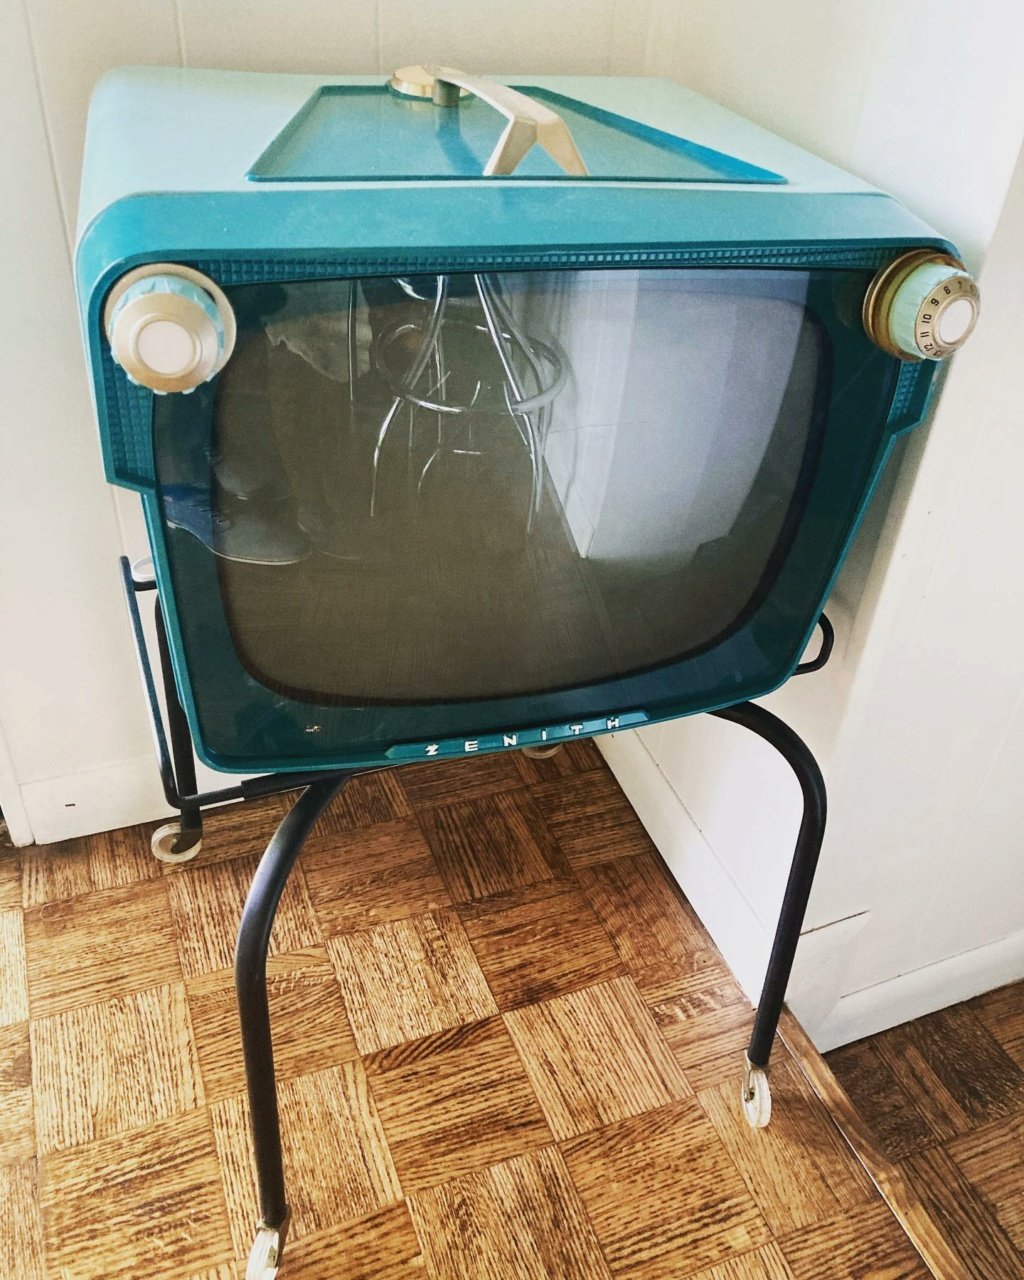 Téloches.... Vintage televisions - 1940s 1950s and 1960s tv - Page 4 17219610